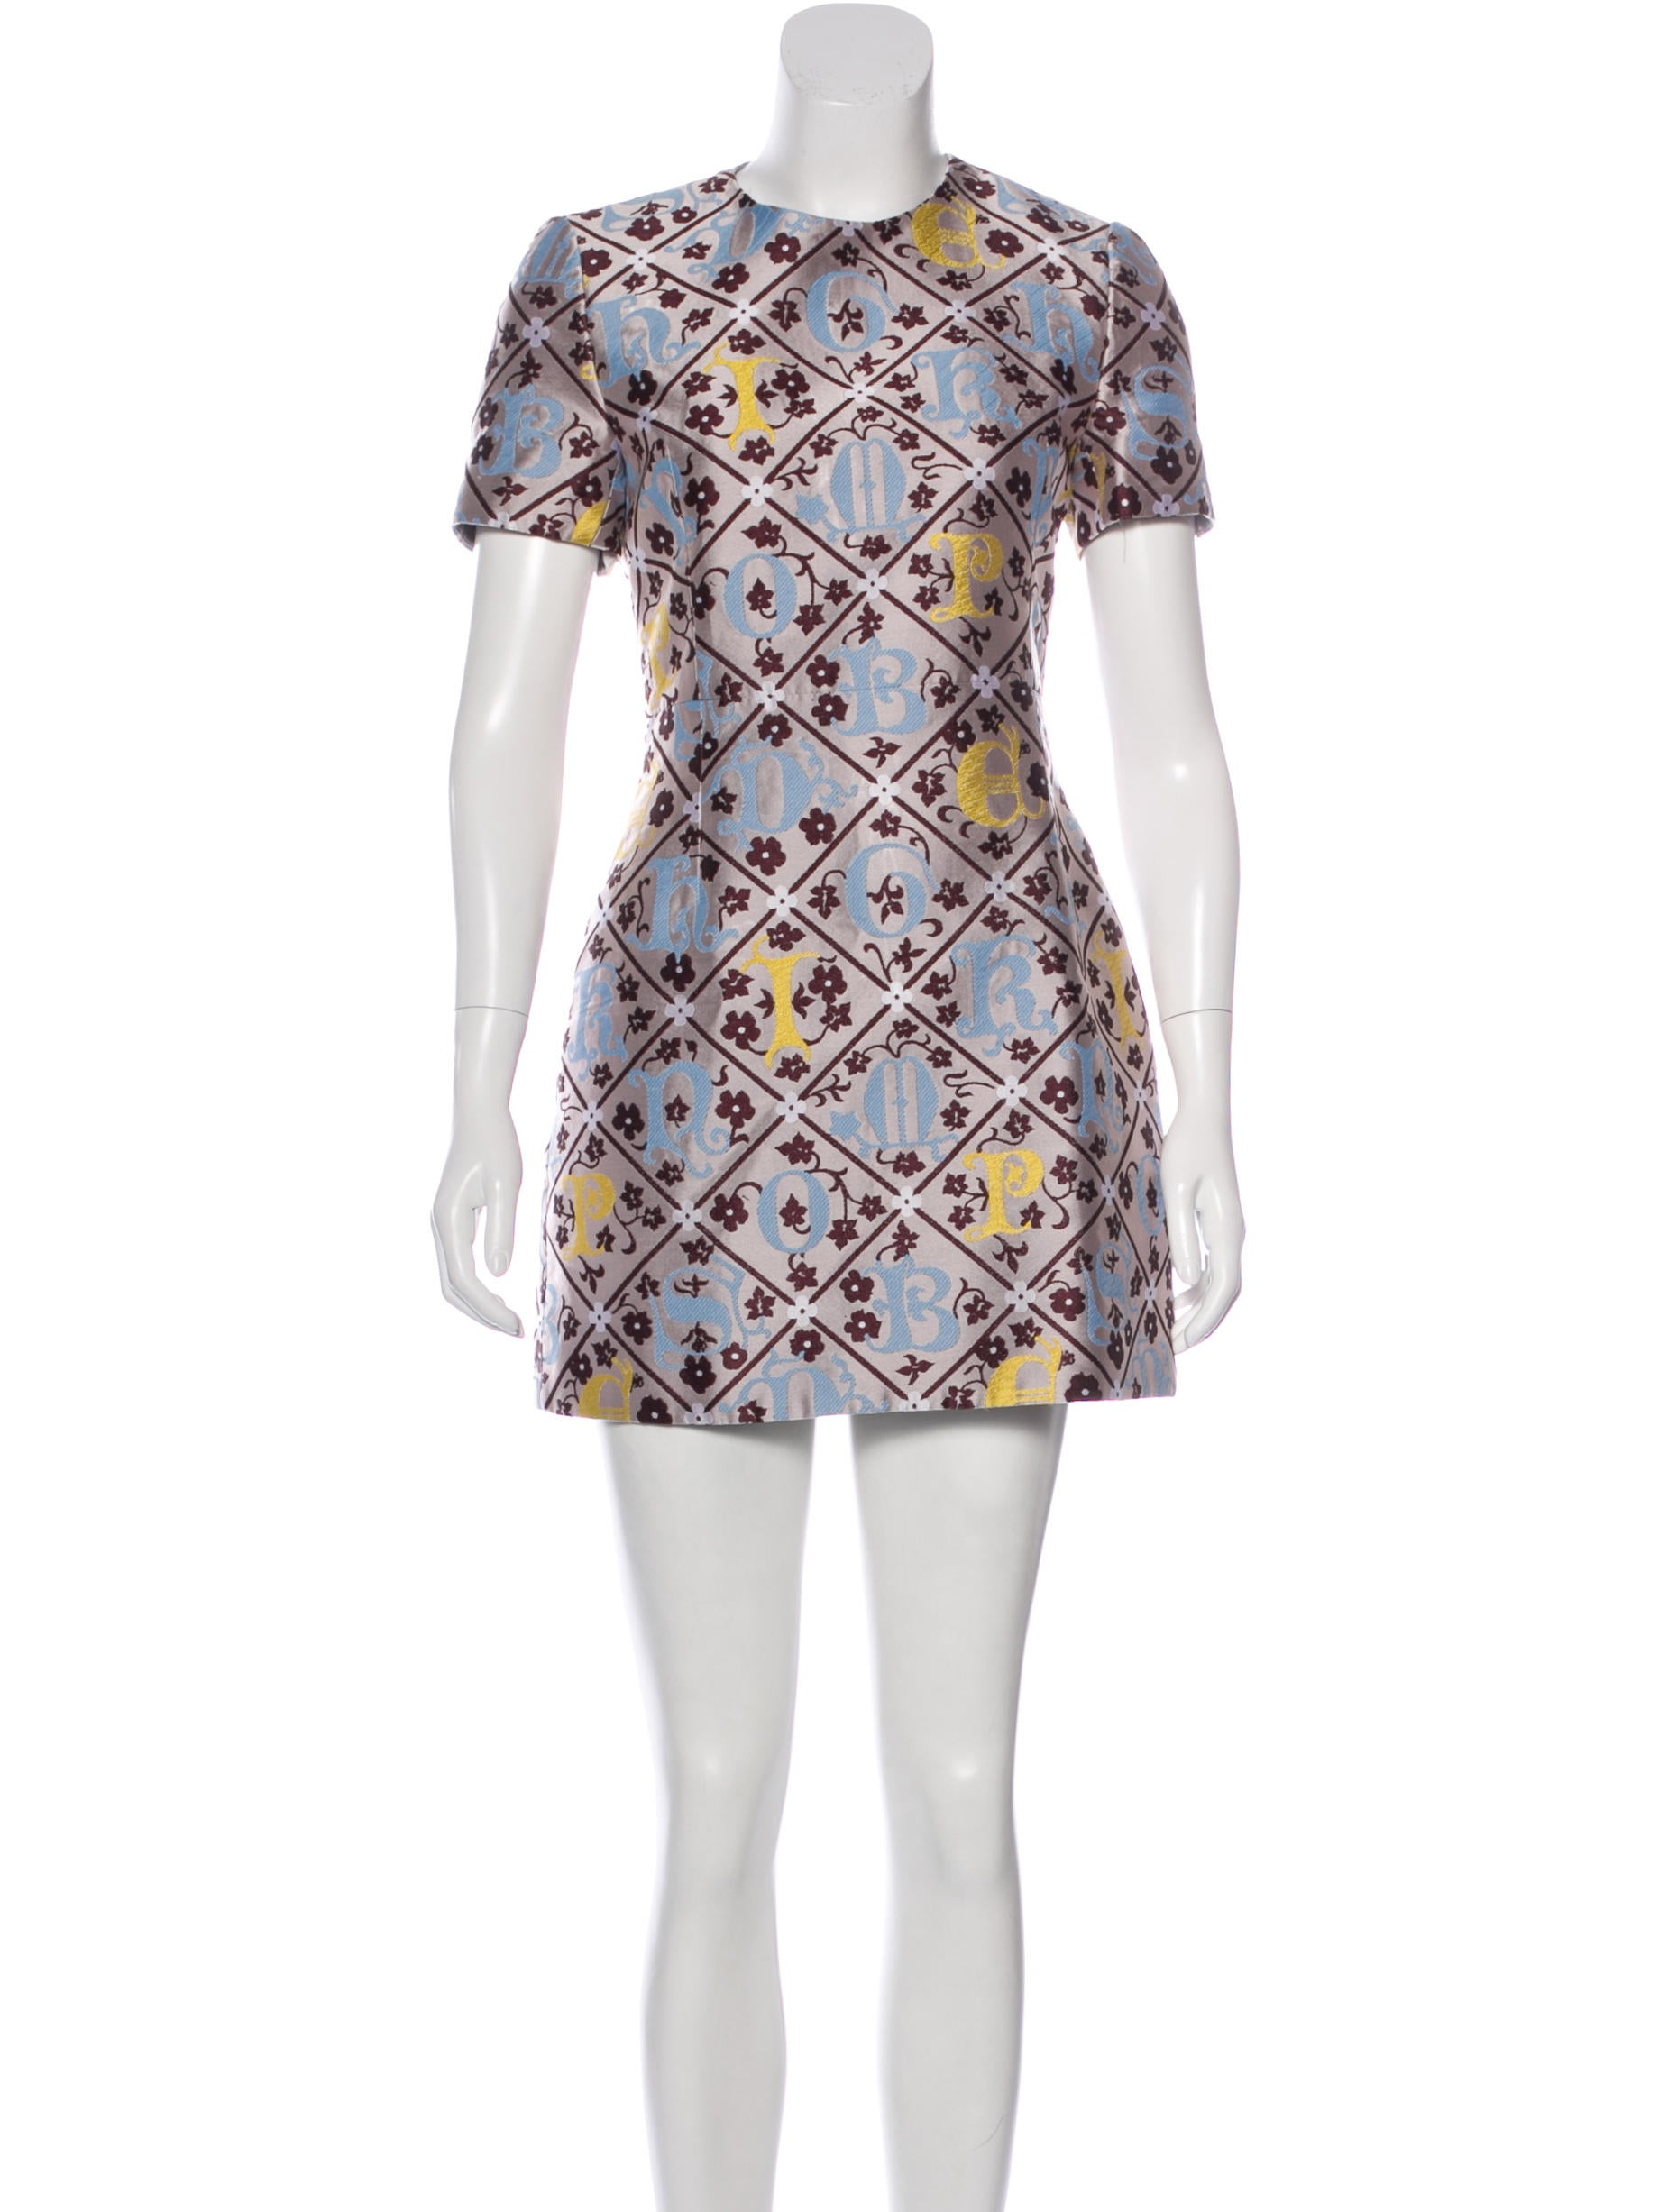 Not Clothing But Makeup Is Just As Important To Finish A: Mary Katrantzou Resort 2015 Forget Me Not Dress